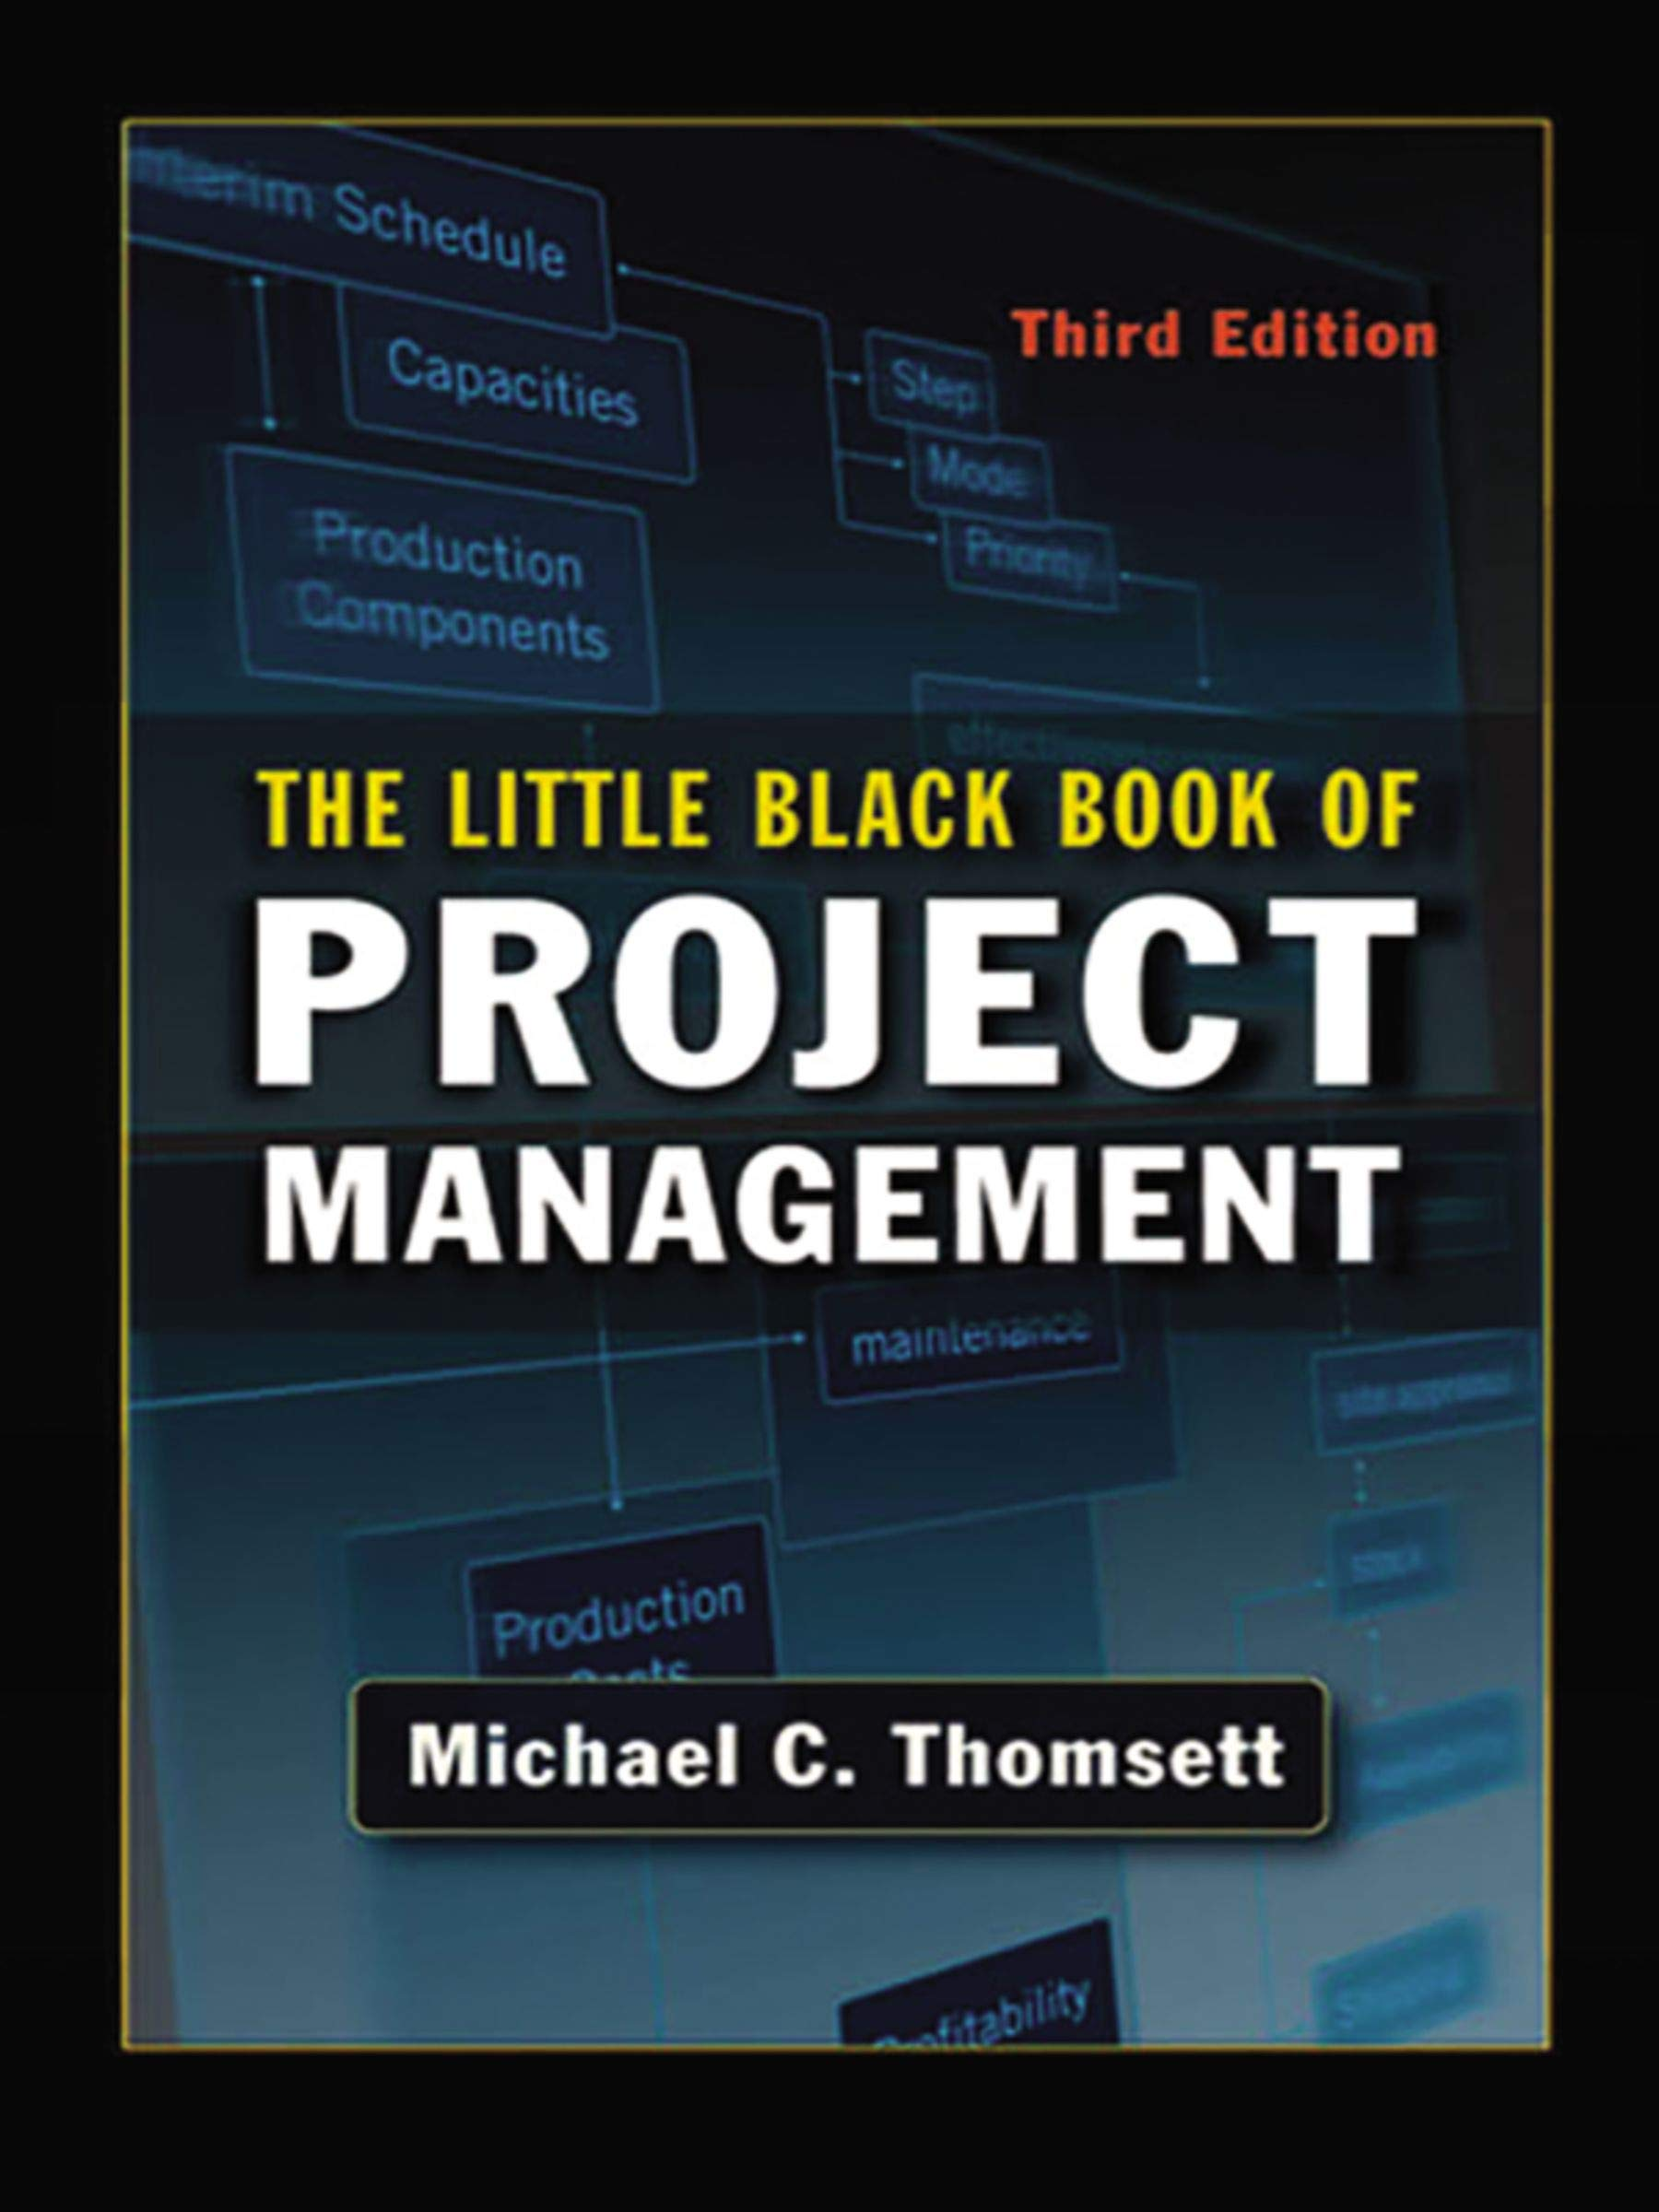 The Little Black Book of Project Management